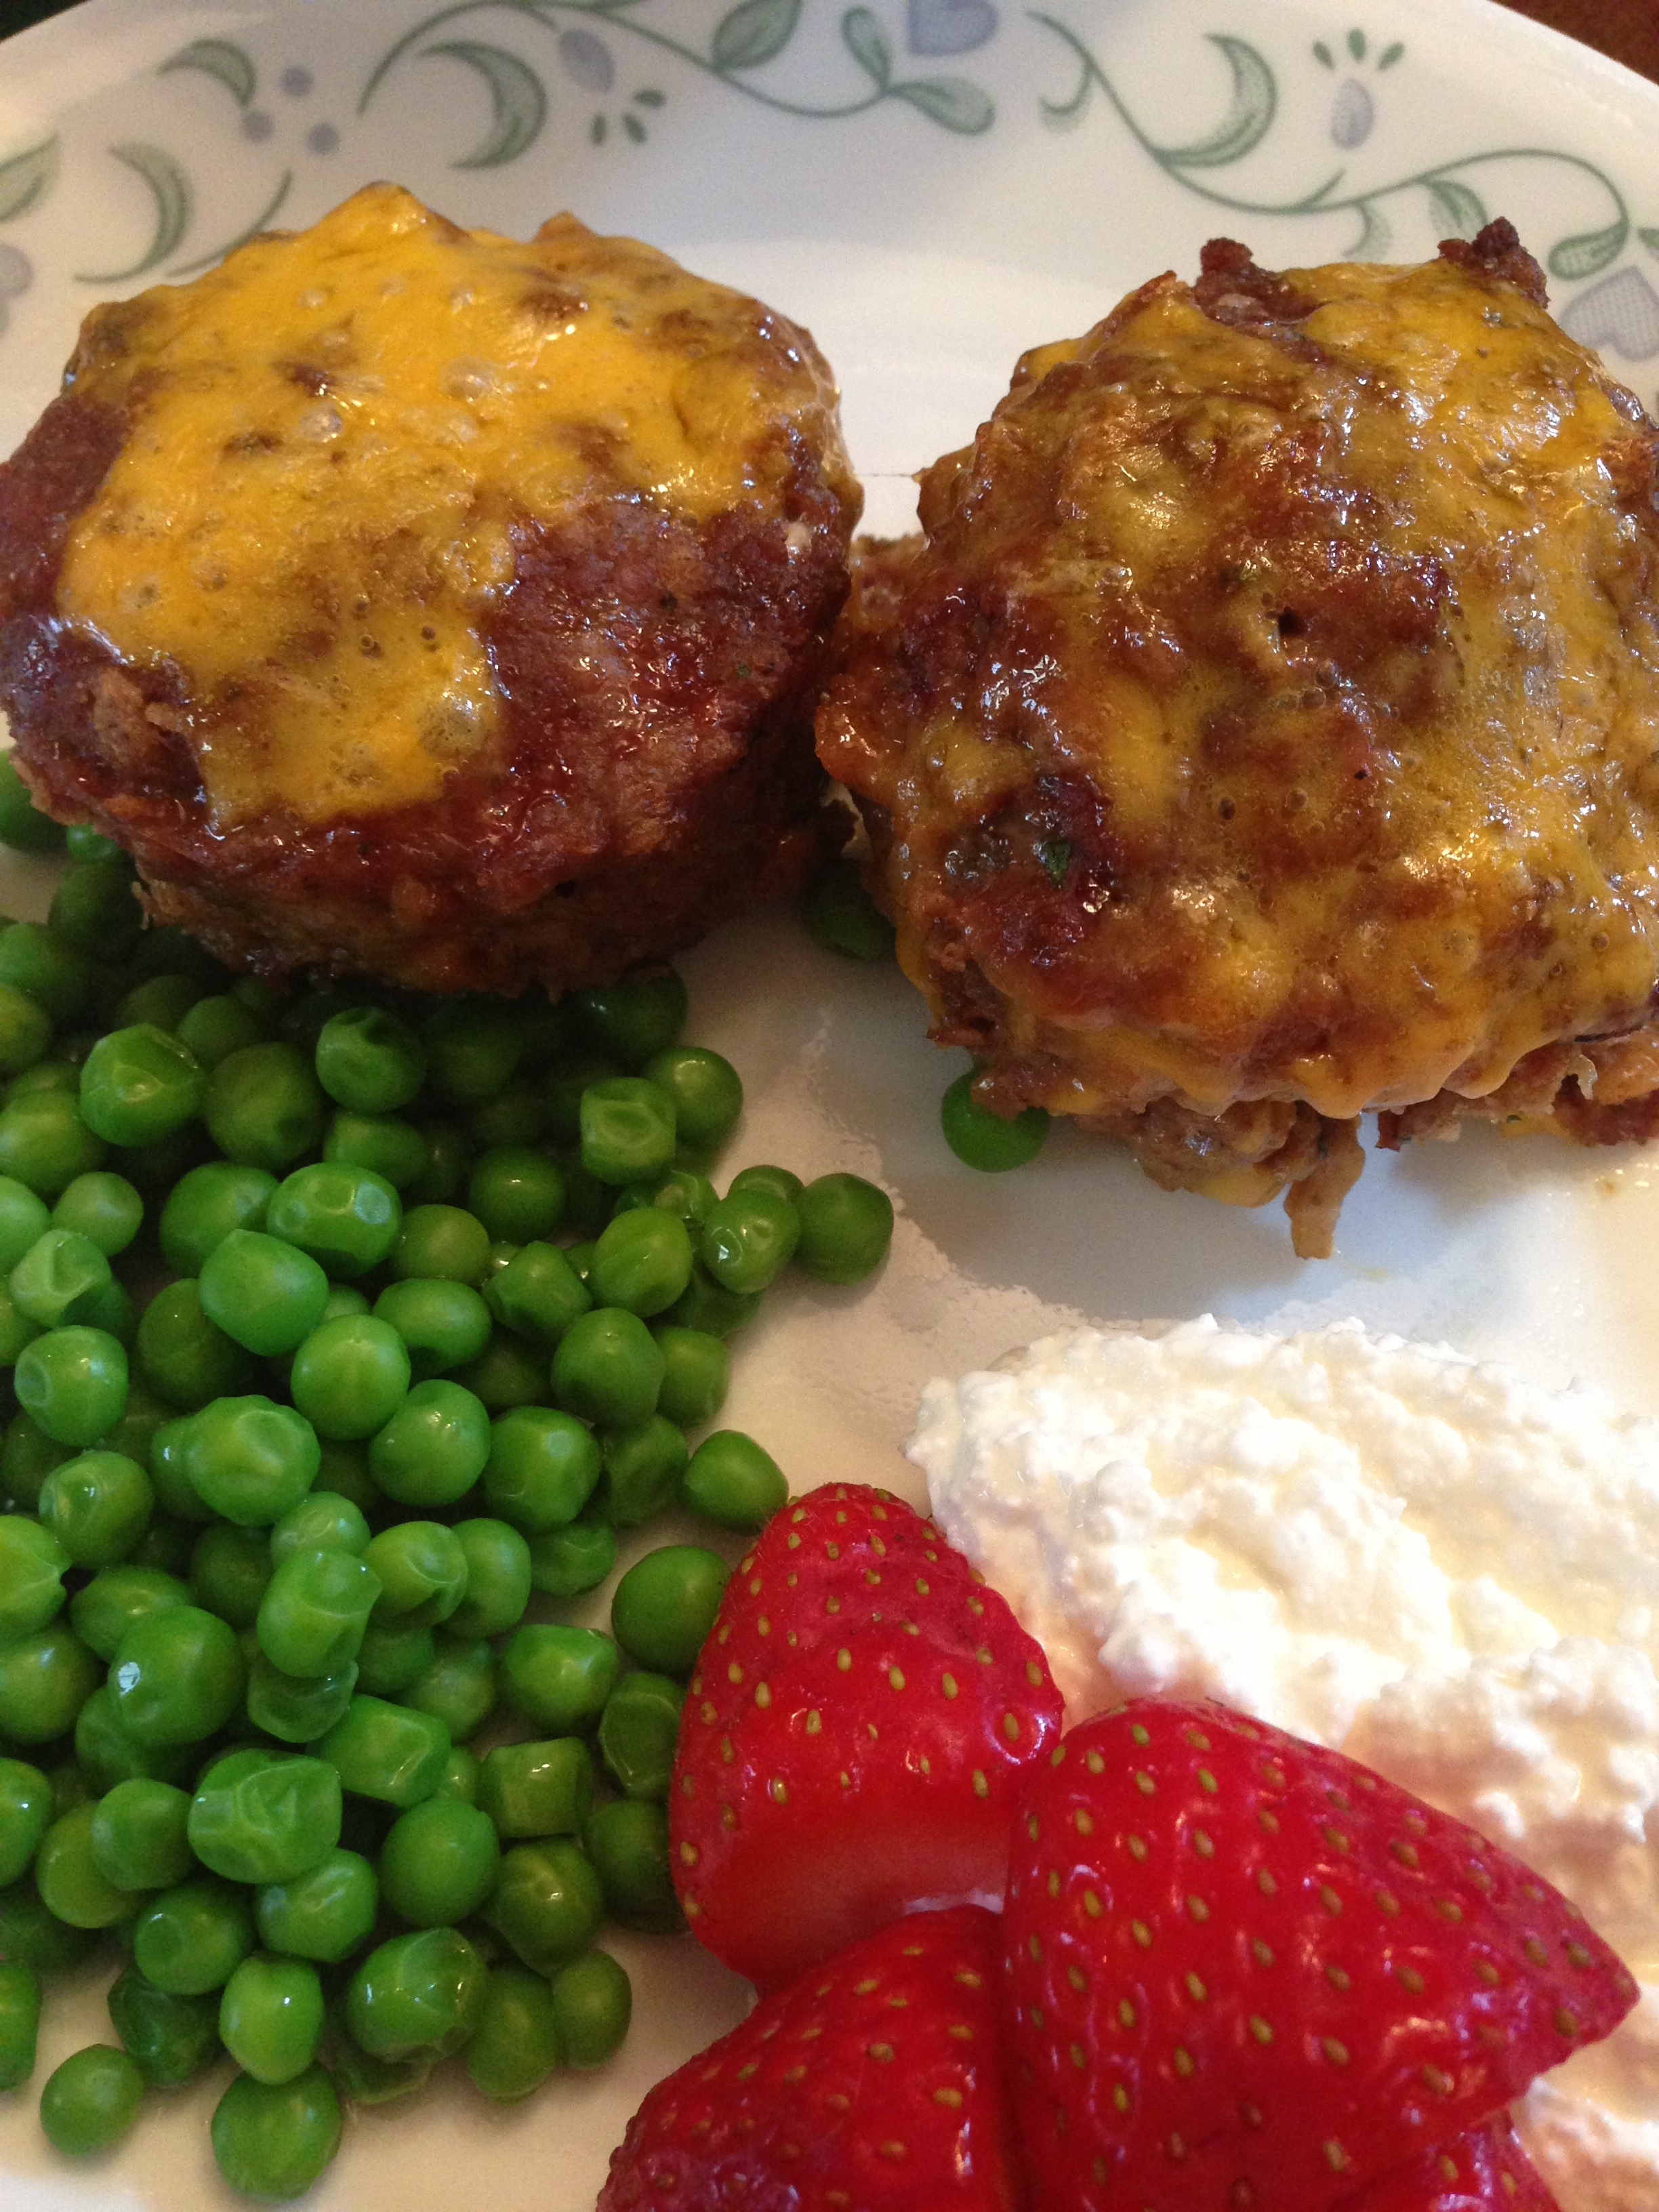 Monday Menu - Mini BBQ Meatloaves - With Just a Bit of Magic